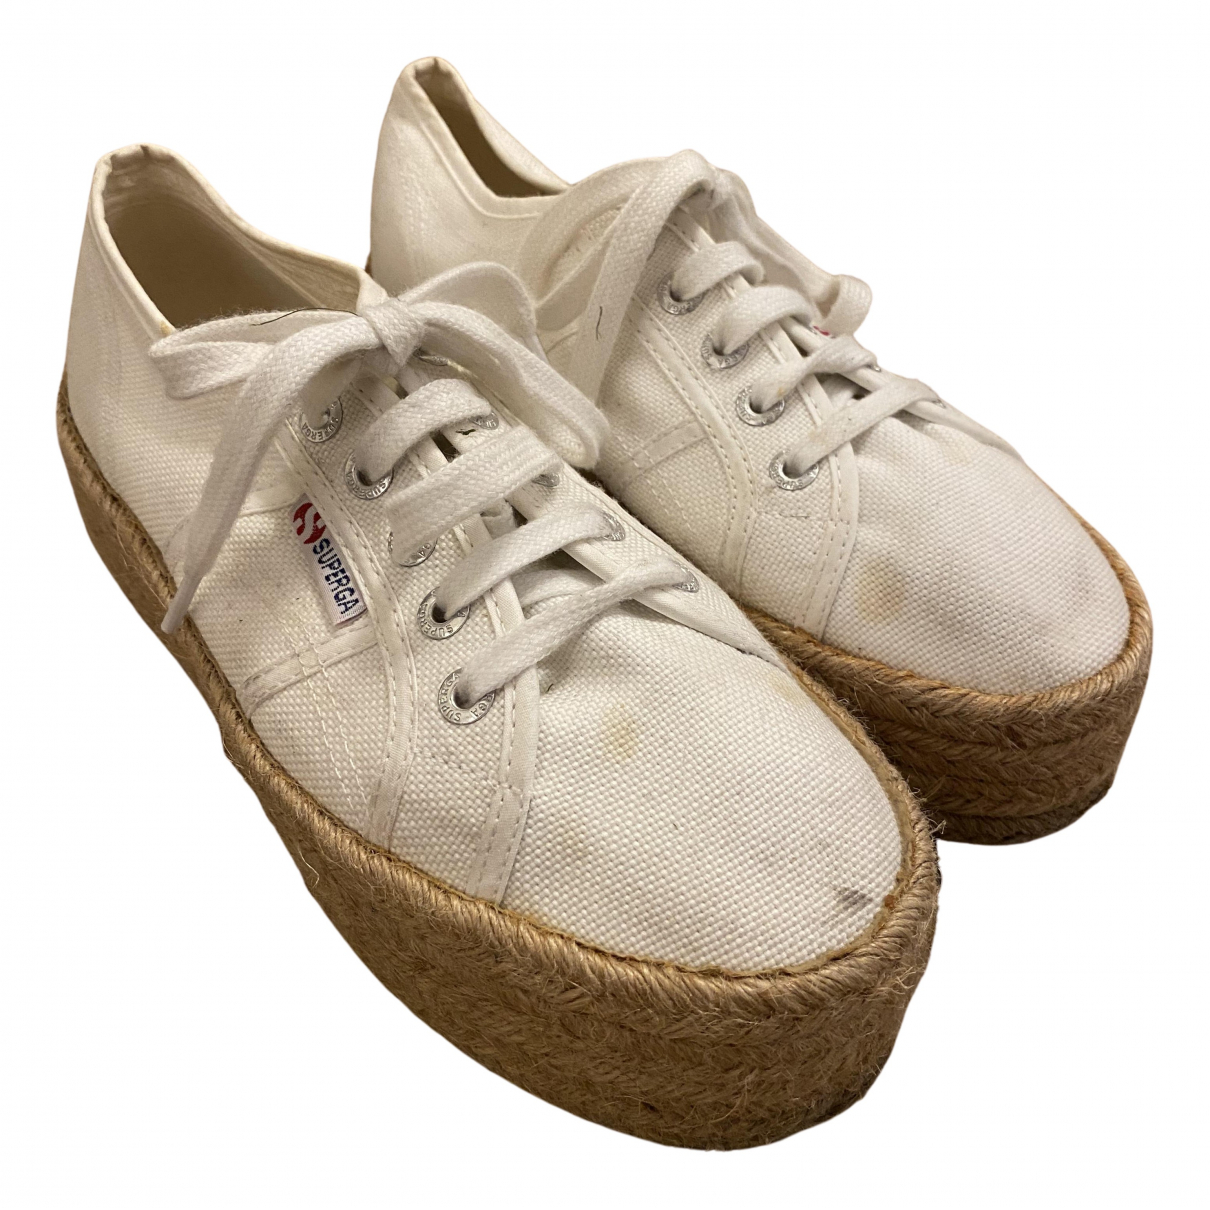 Superga N White Cloth Espadrilles for Women 38 EU